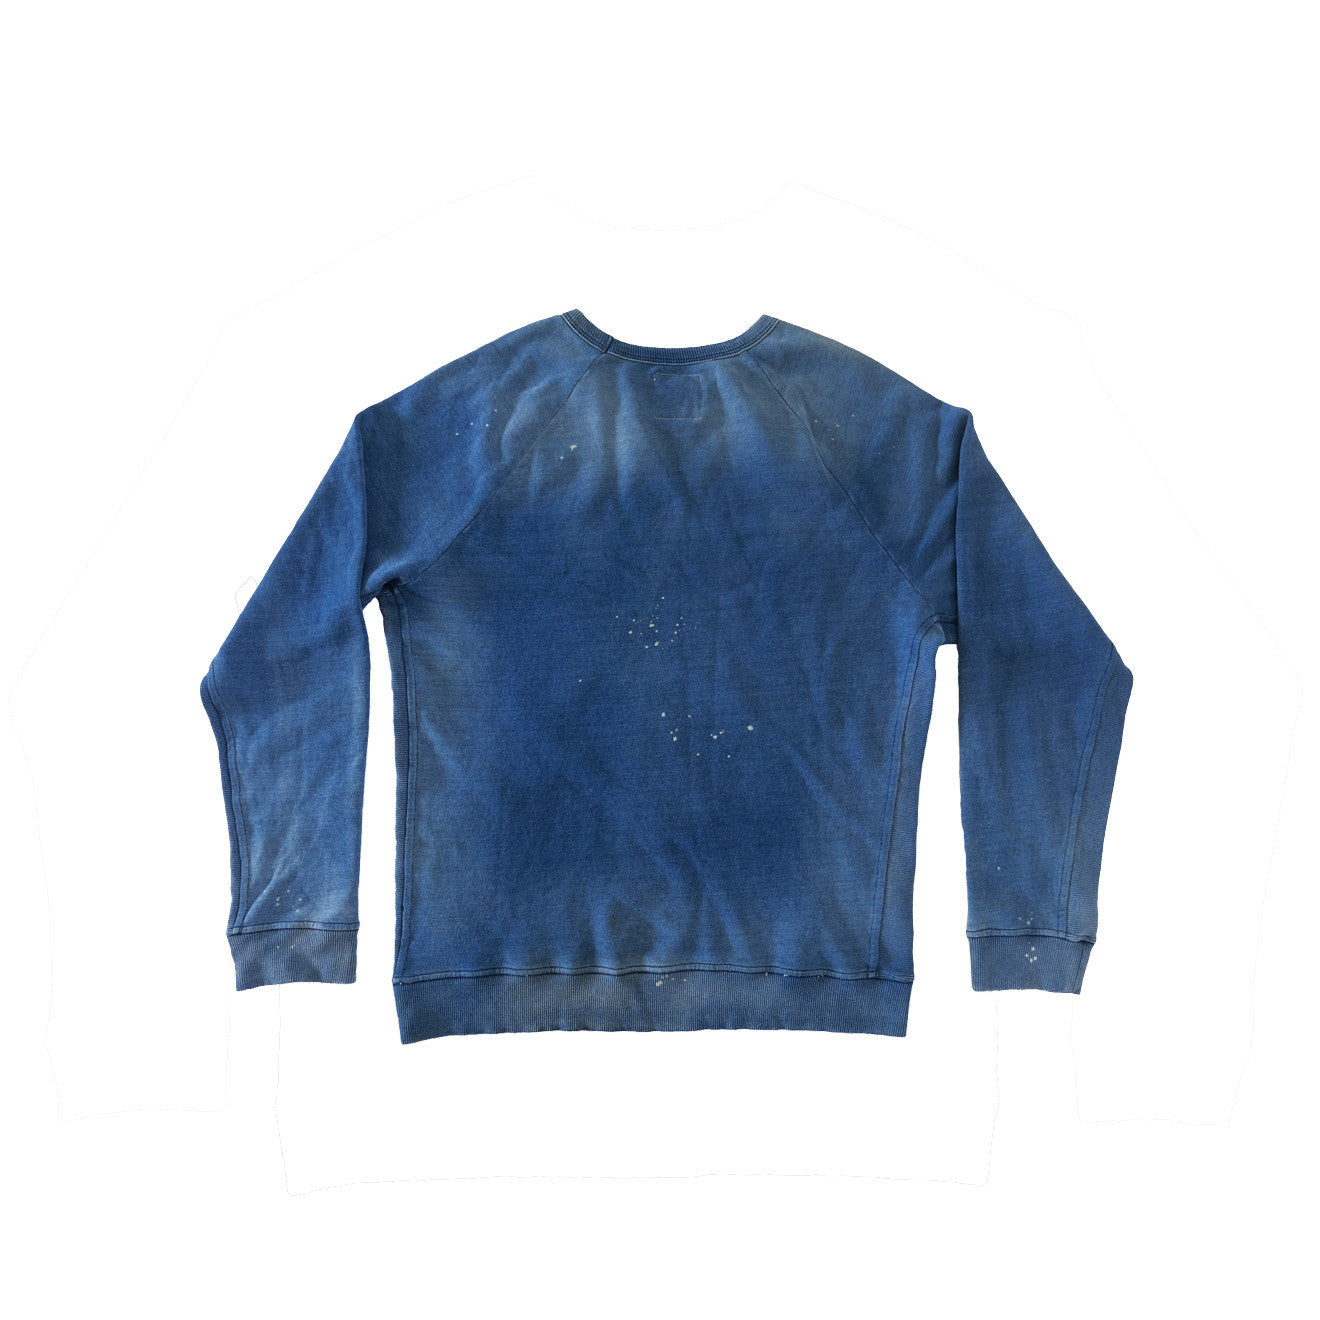 TALLEY OFFICIAL PUFF PRINT MEN'S INDIGO SWEATSHIRT | Instantly Available